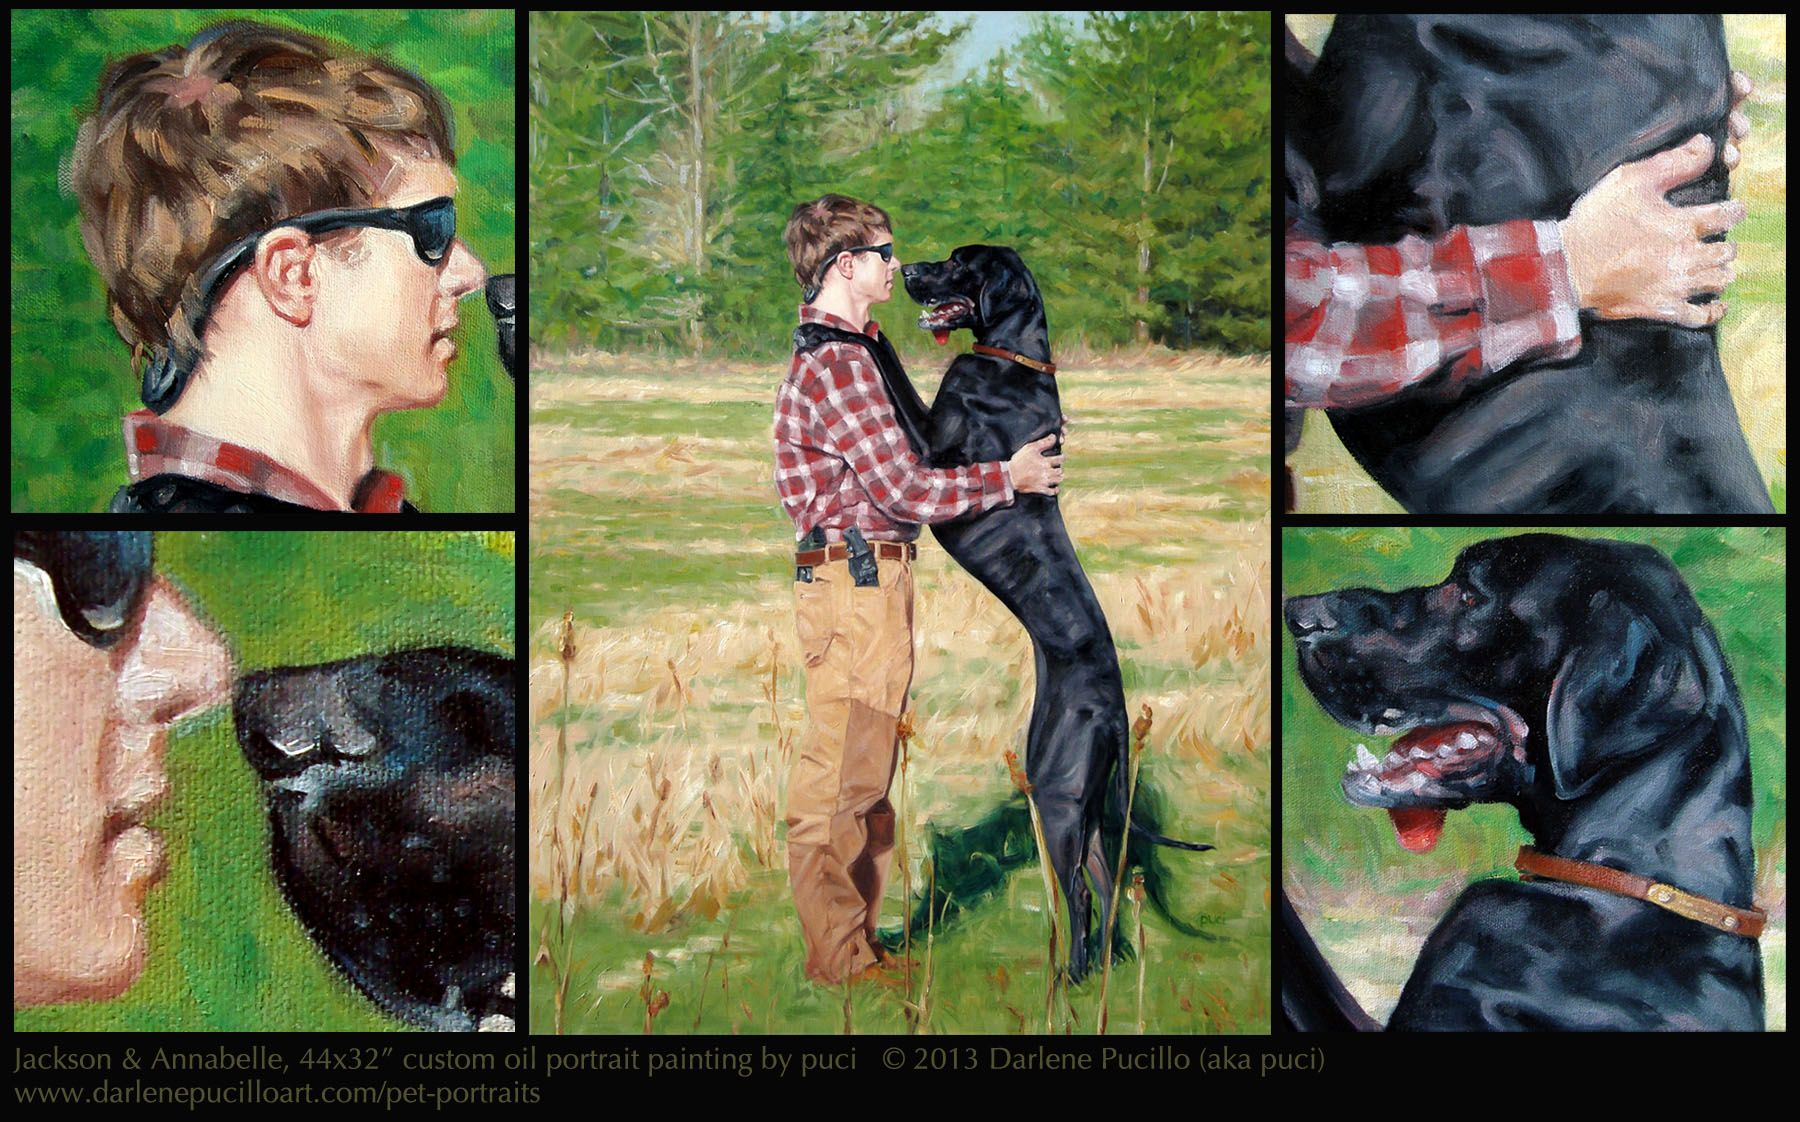 Great Dane AnnaBelle with Jackson in South Carolina woods.  This is a 44x32 inch custom oil paintng by artist puci. www.darlenepucilloart.com/pet-portraits